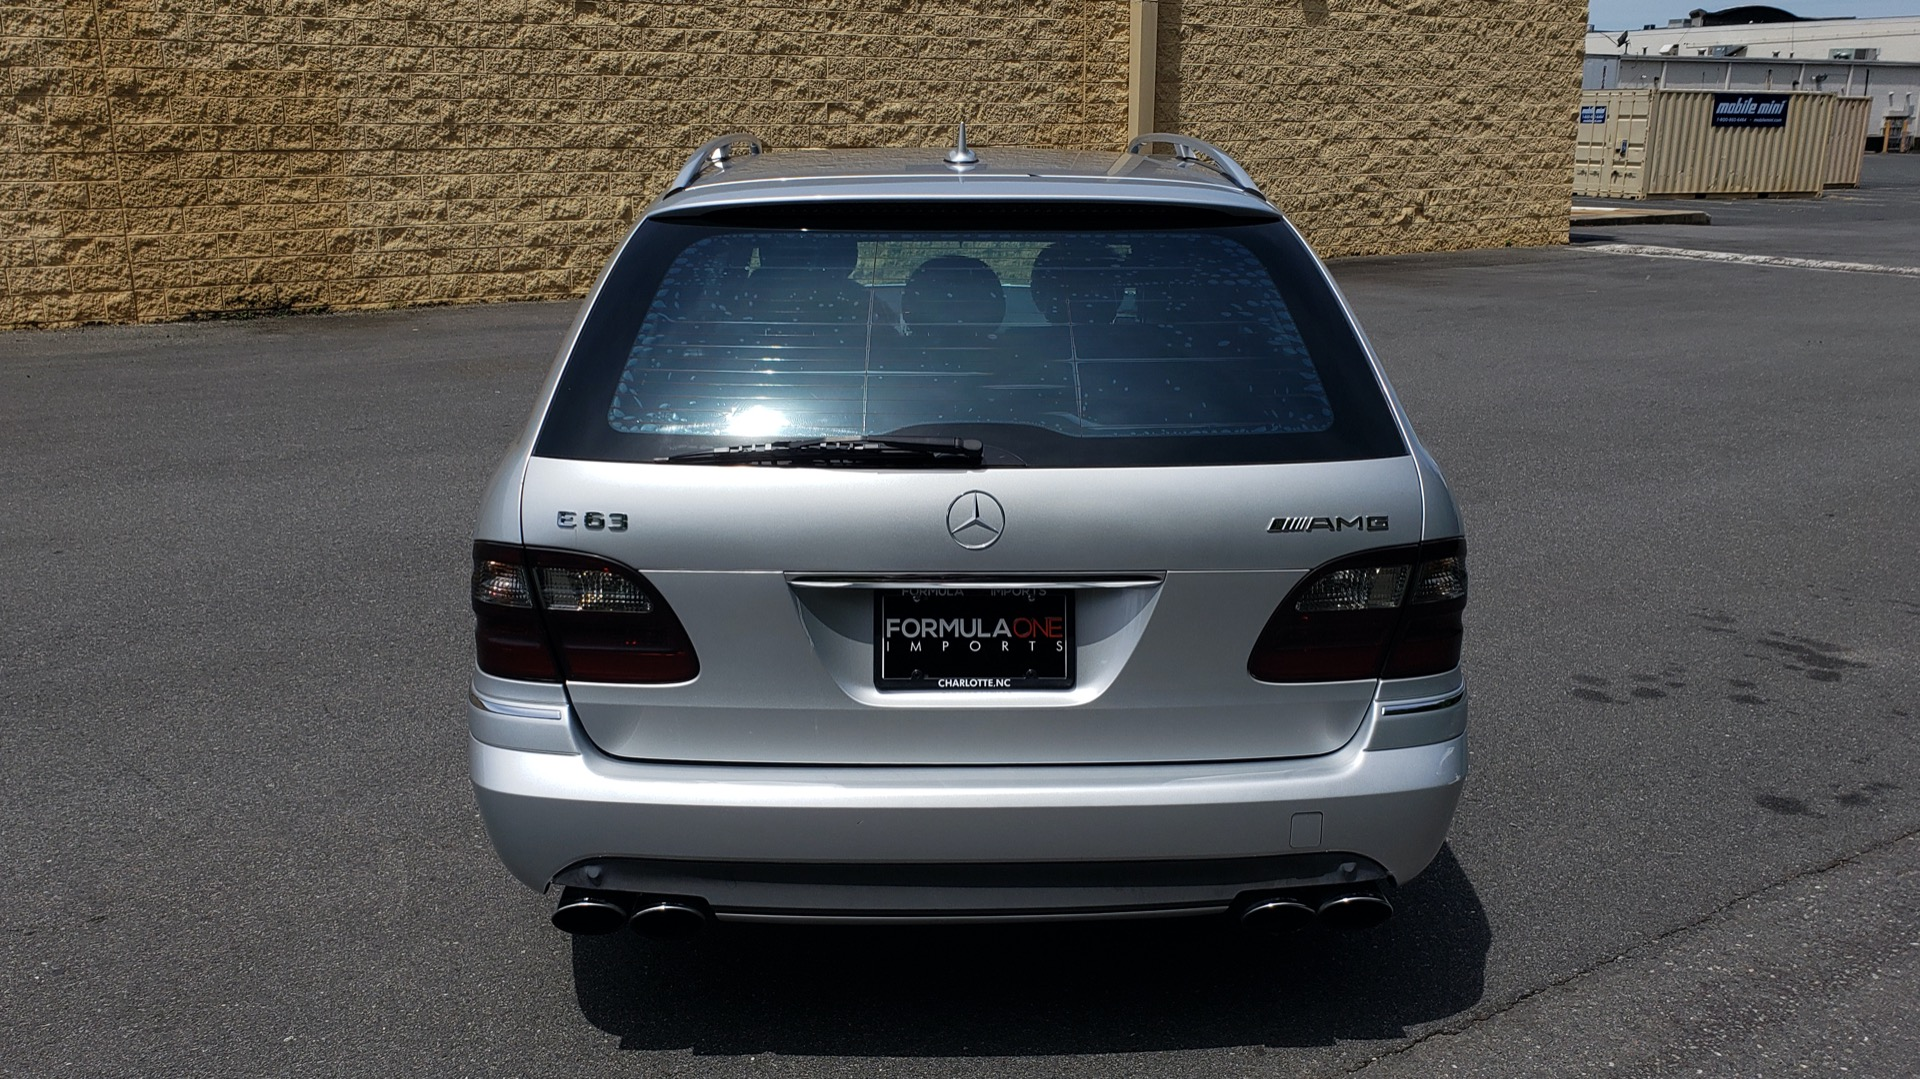 Used 2007 Mercedes-Benz E-Class 6.3L AMG for sale Sold at Formula Imports in Charlotte NC 28227 26